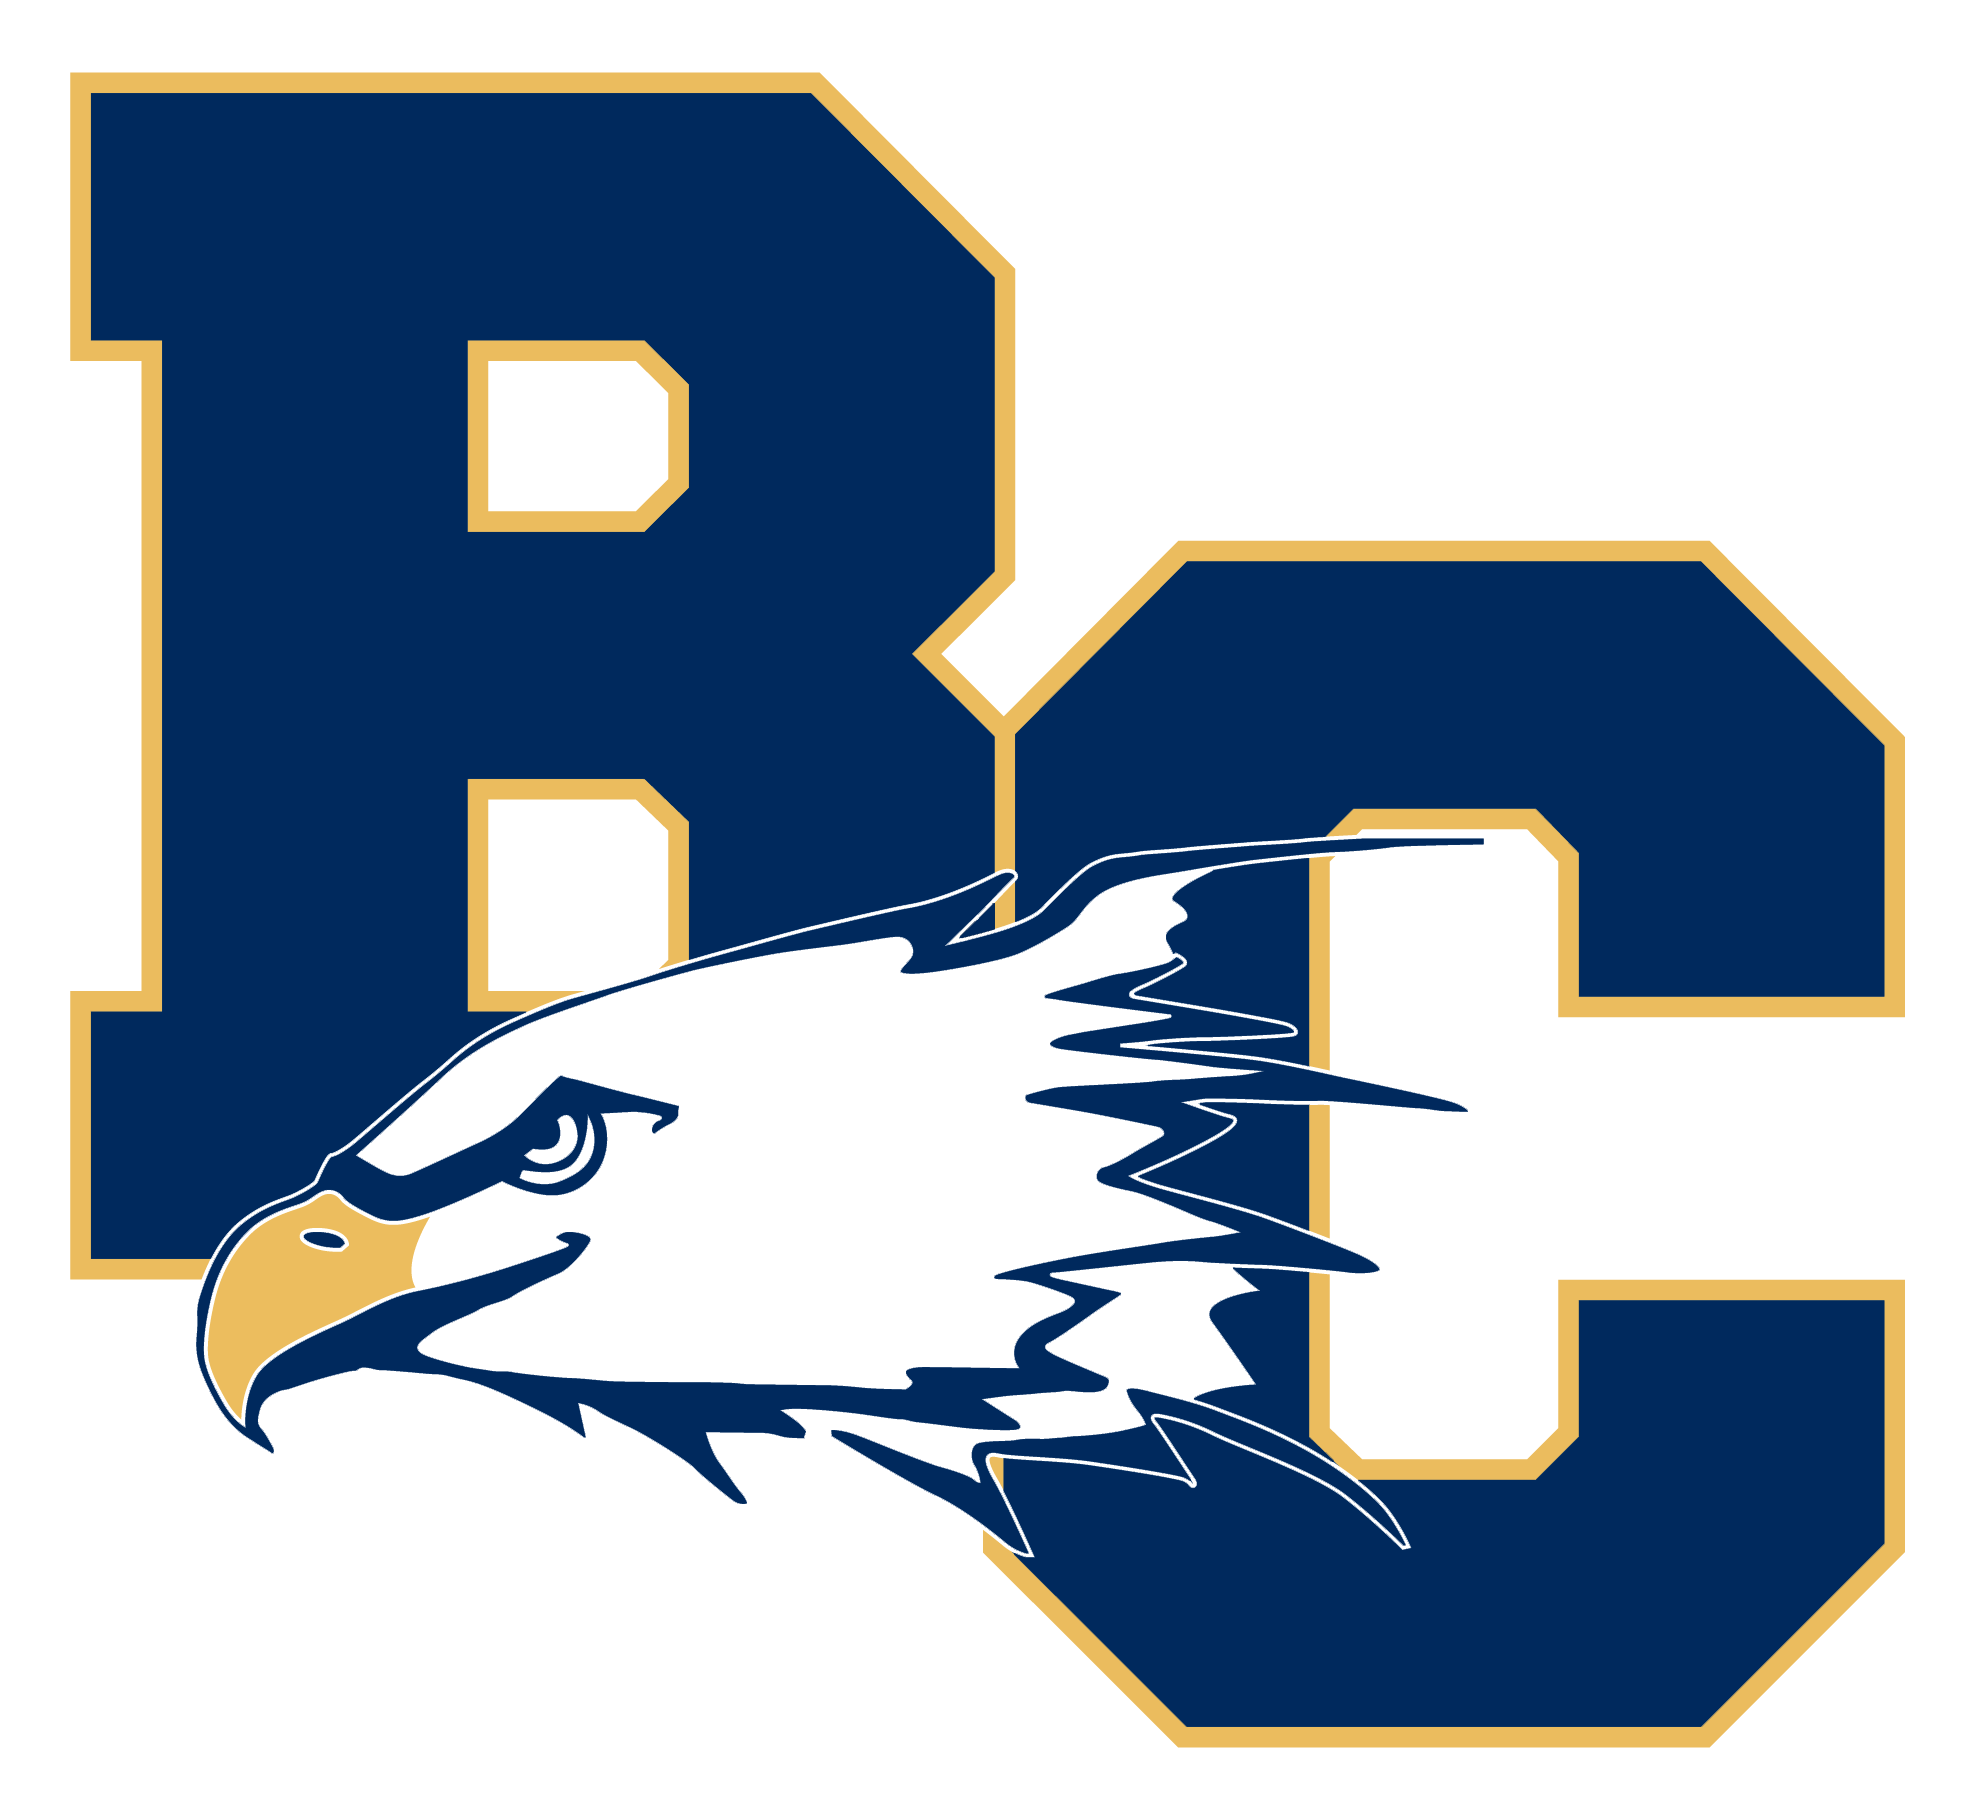 Berean Christian High School logo